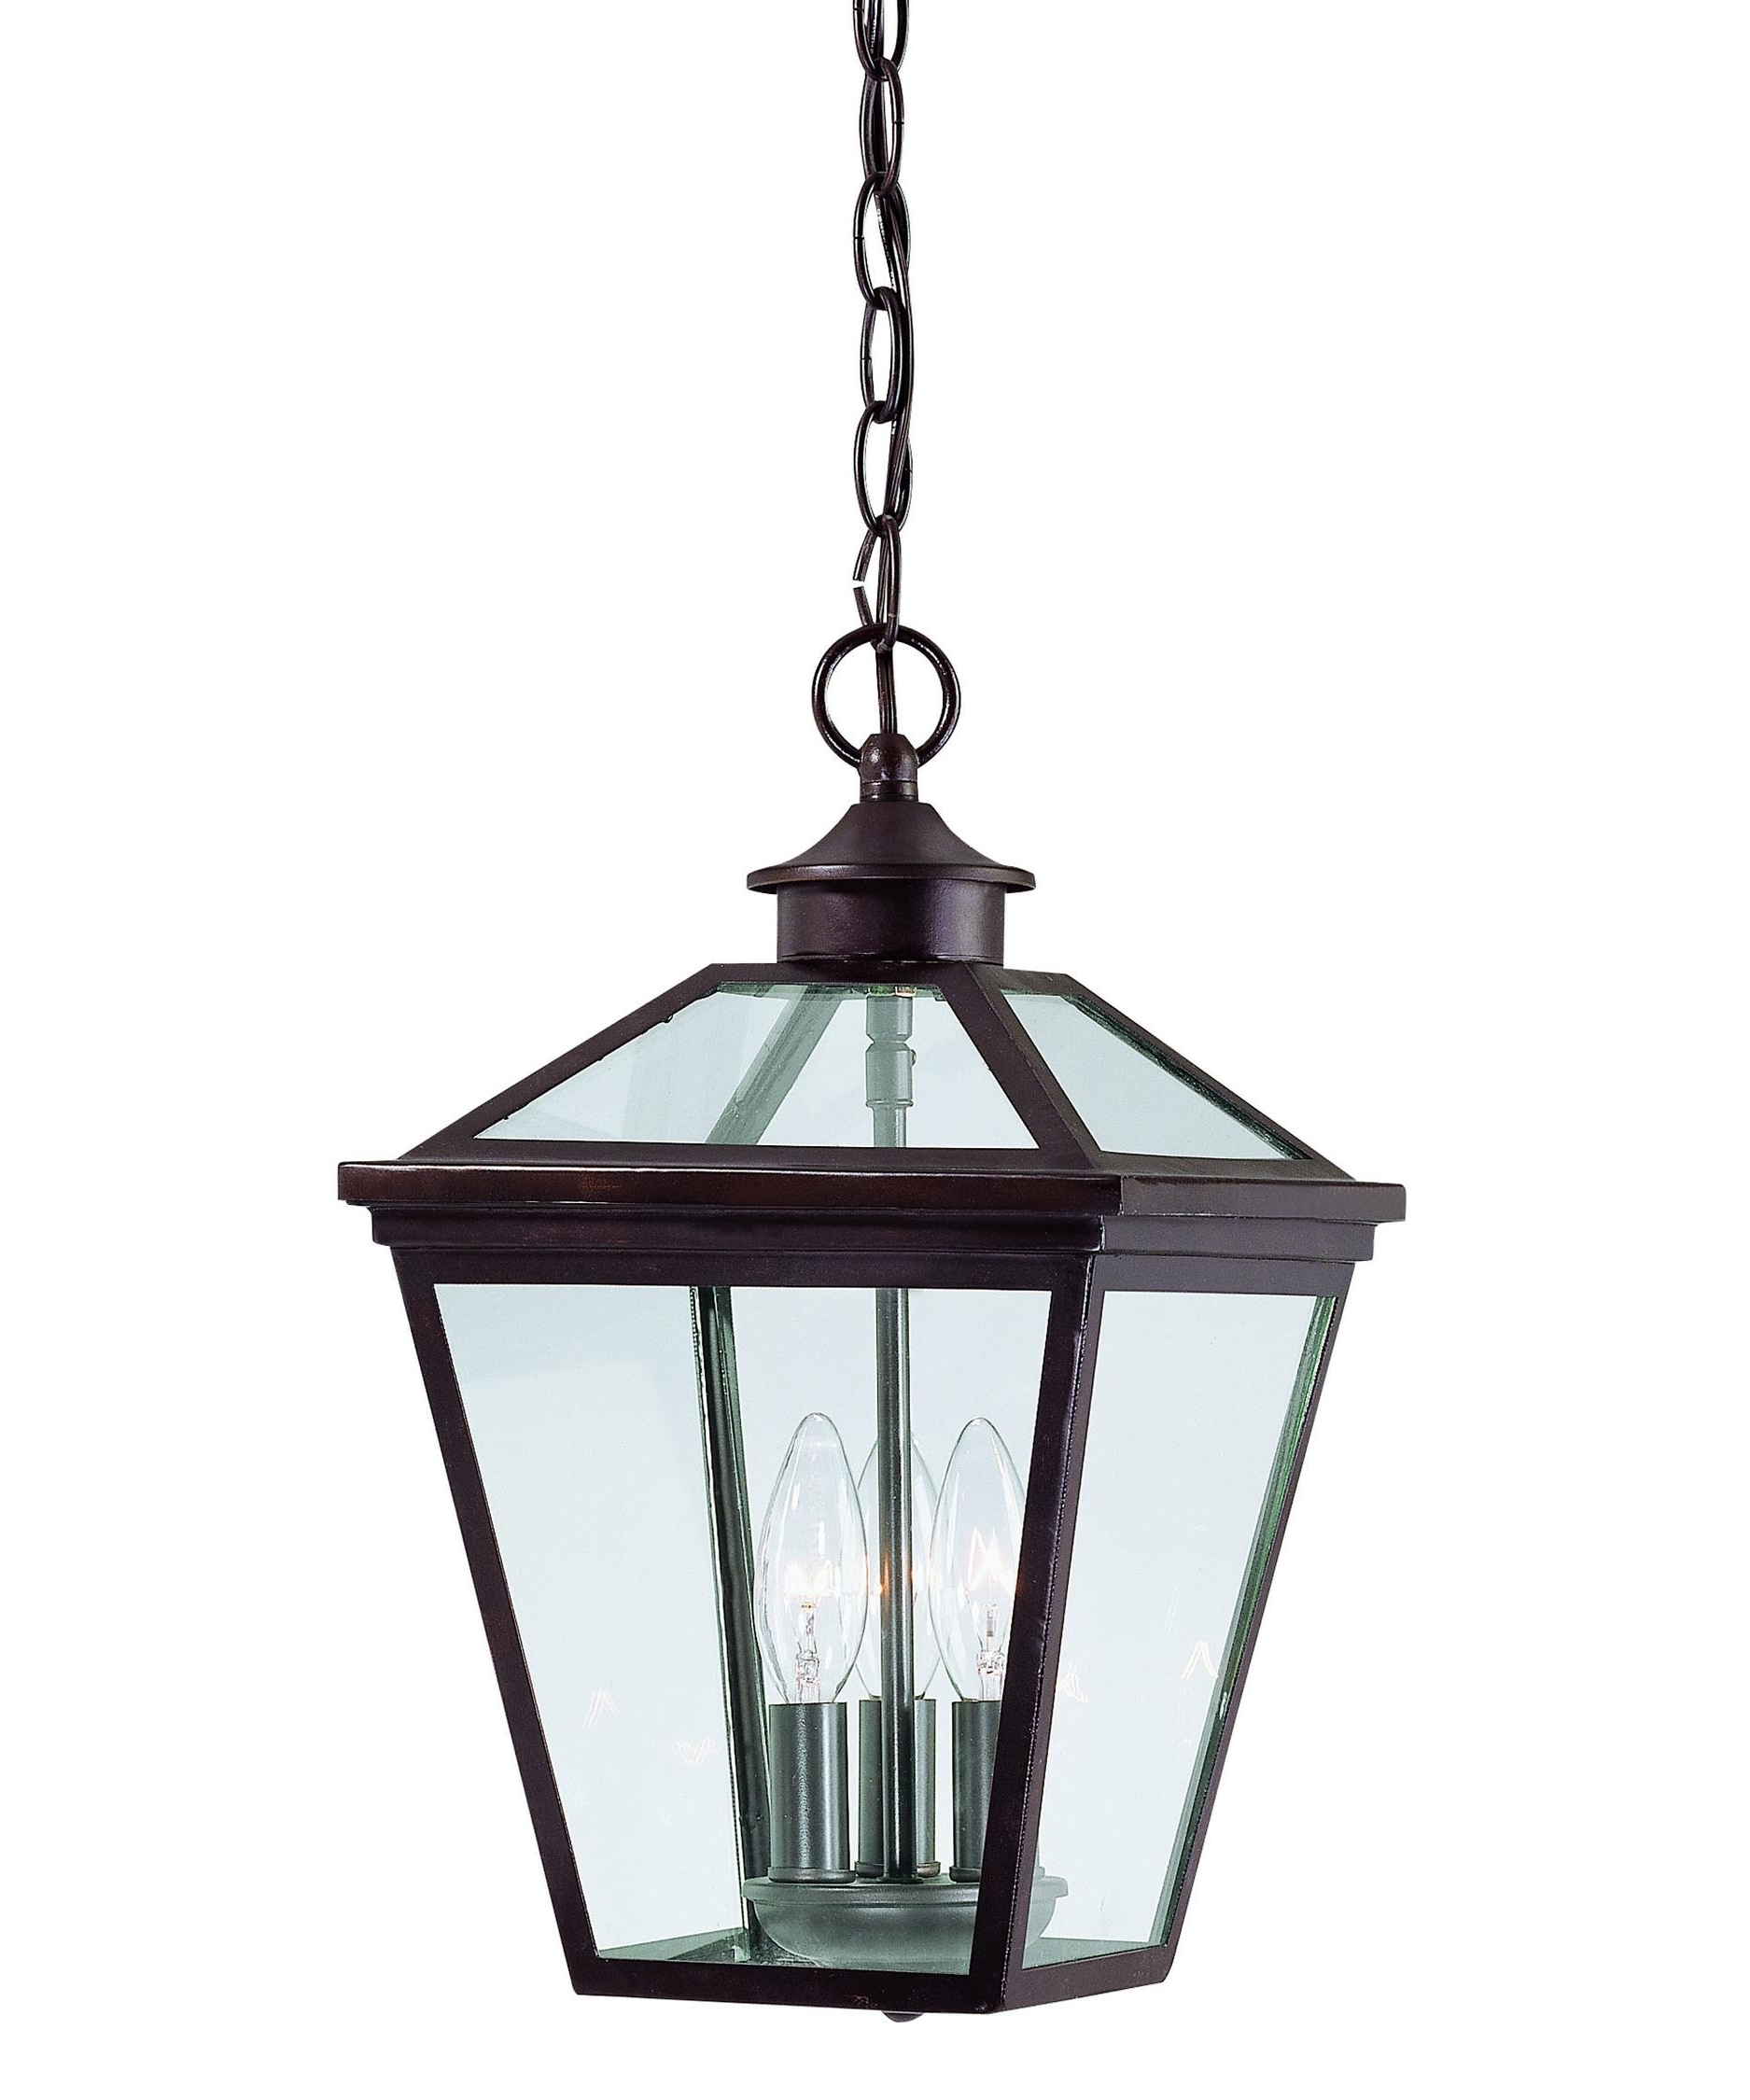 Fashionable Savoy House 5 146 13 Ellijay 9 Inch Wide 3 Light Outdoor Hanging Regarding Outdoor Hanging Glass Lanterns (View 3 of 20)